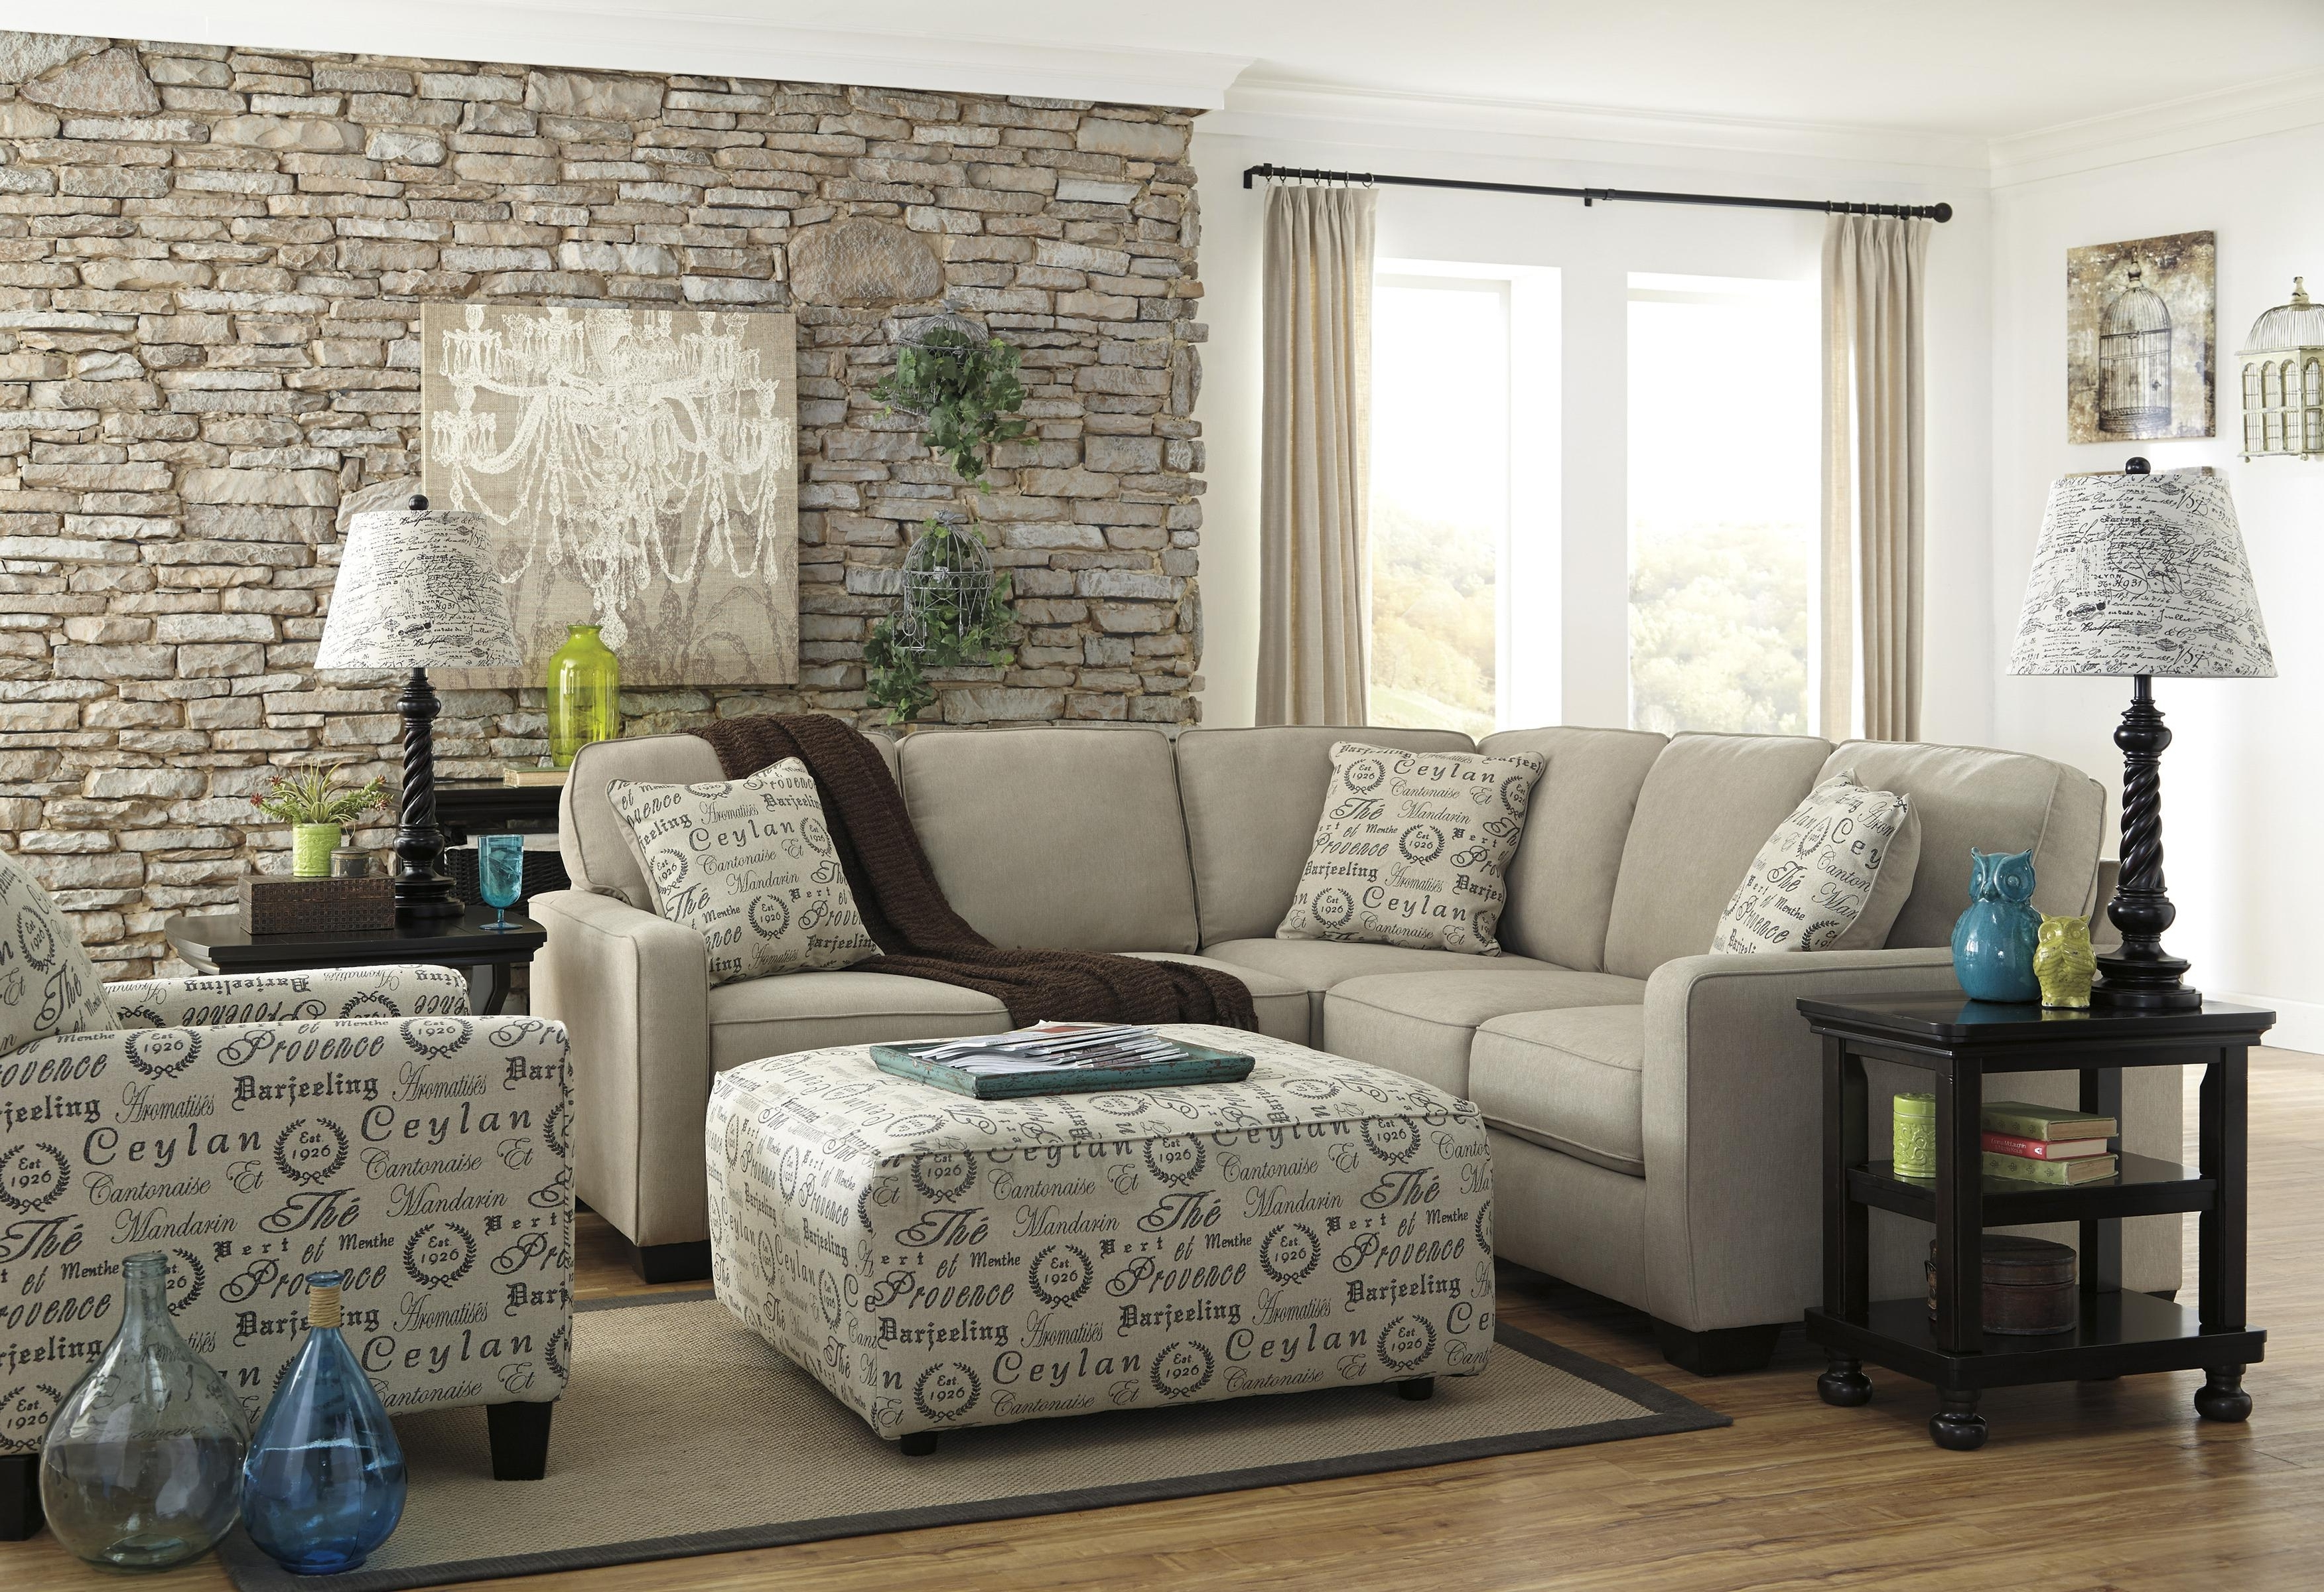 2018 Nebraska Furniture Mart L Shaped Sectionals Rod Kush Furniture Pertaining To Nebraska Furniture Mart Sectional Sofas (View 9 of 15)